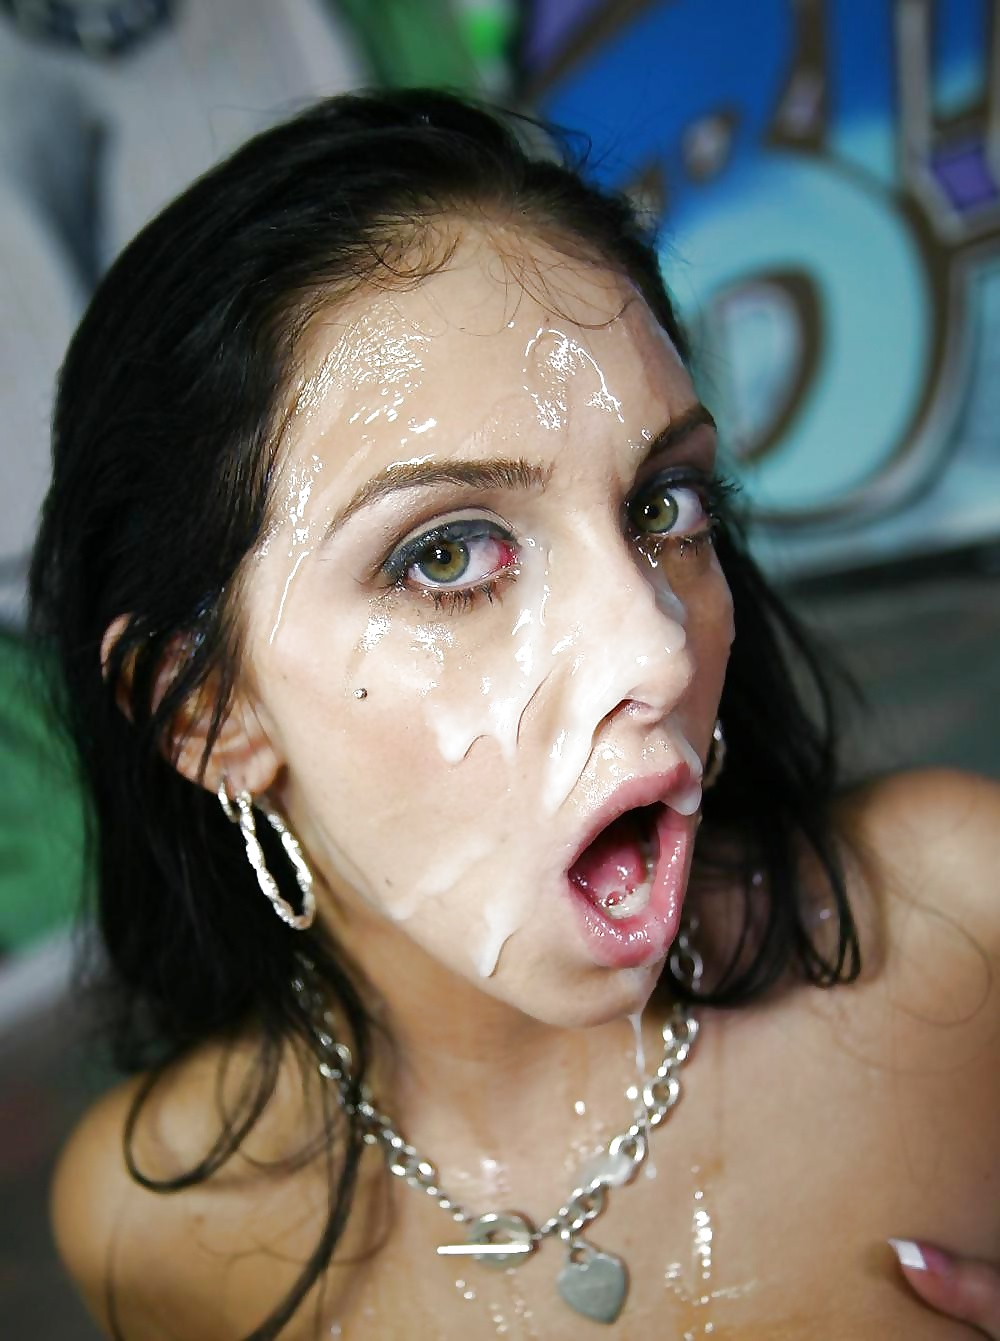 Veronica leal gets covered in messy cum after hard anal pounding picture